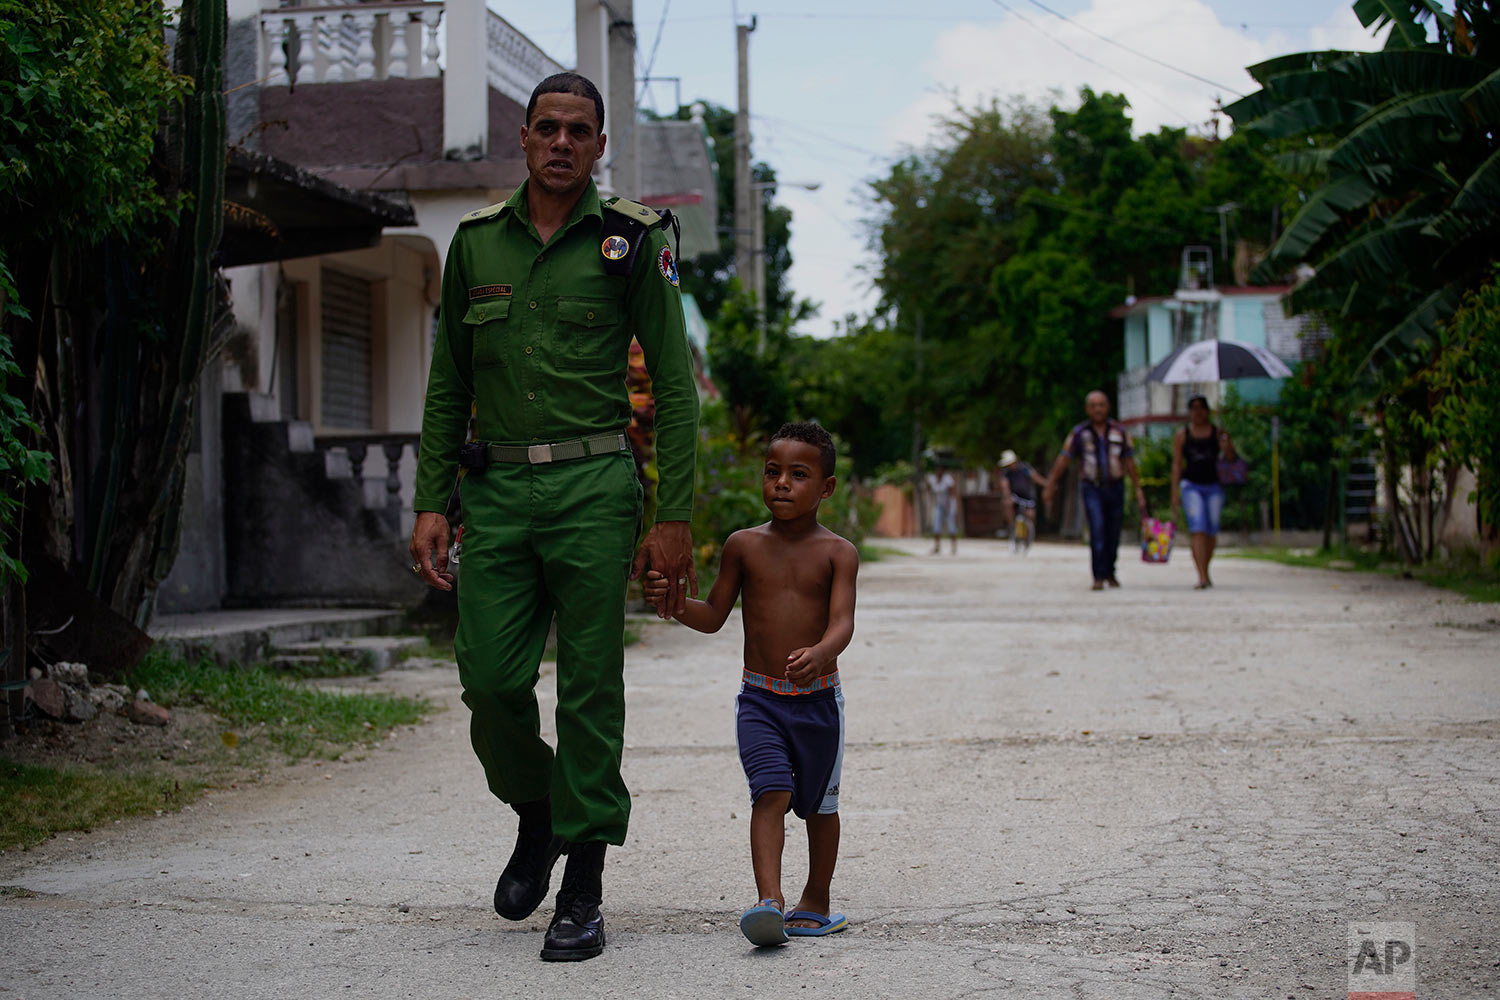 A first lieutenant police officer walks his son to a party where they will cook a large stew in Guantanamo, Cuba, July 25, 2018. It's tradition for neighbors to pool their efforts in a large pork-based stew.